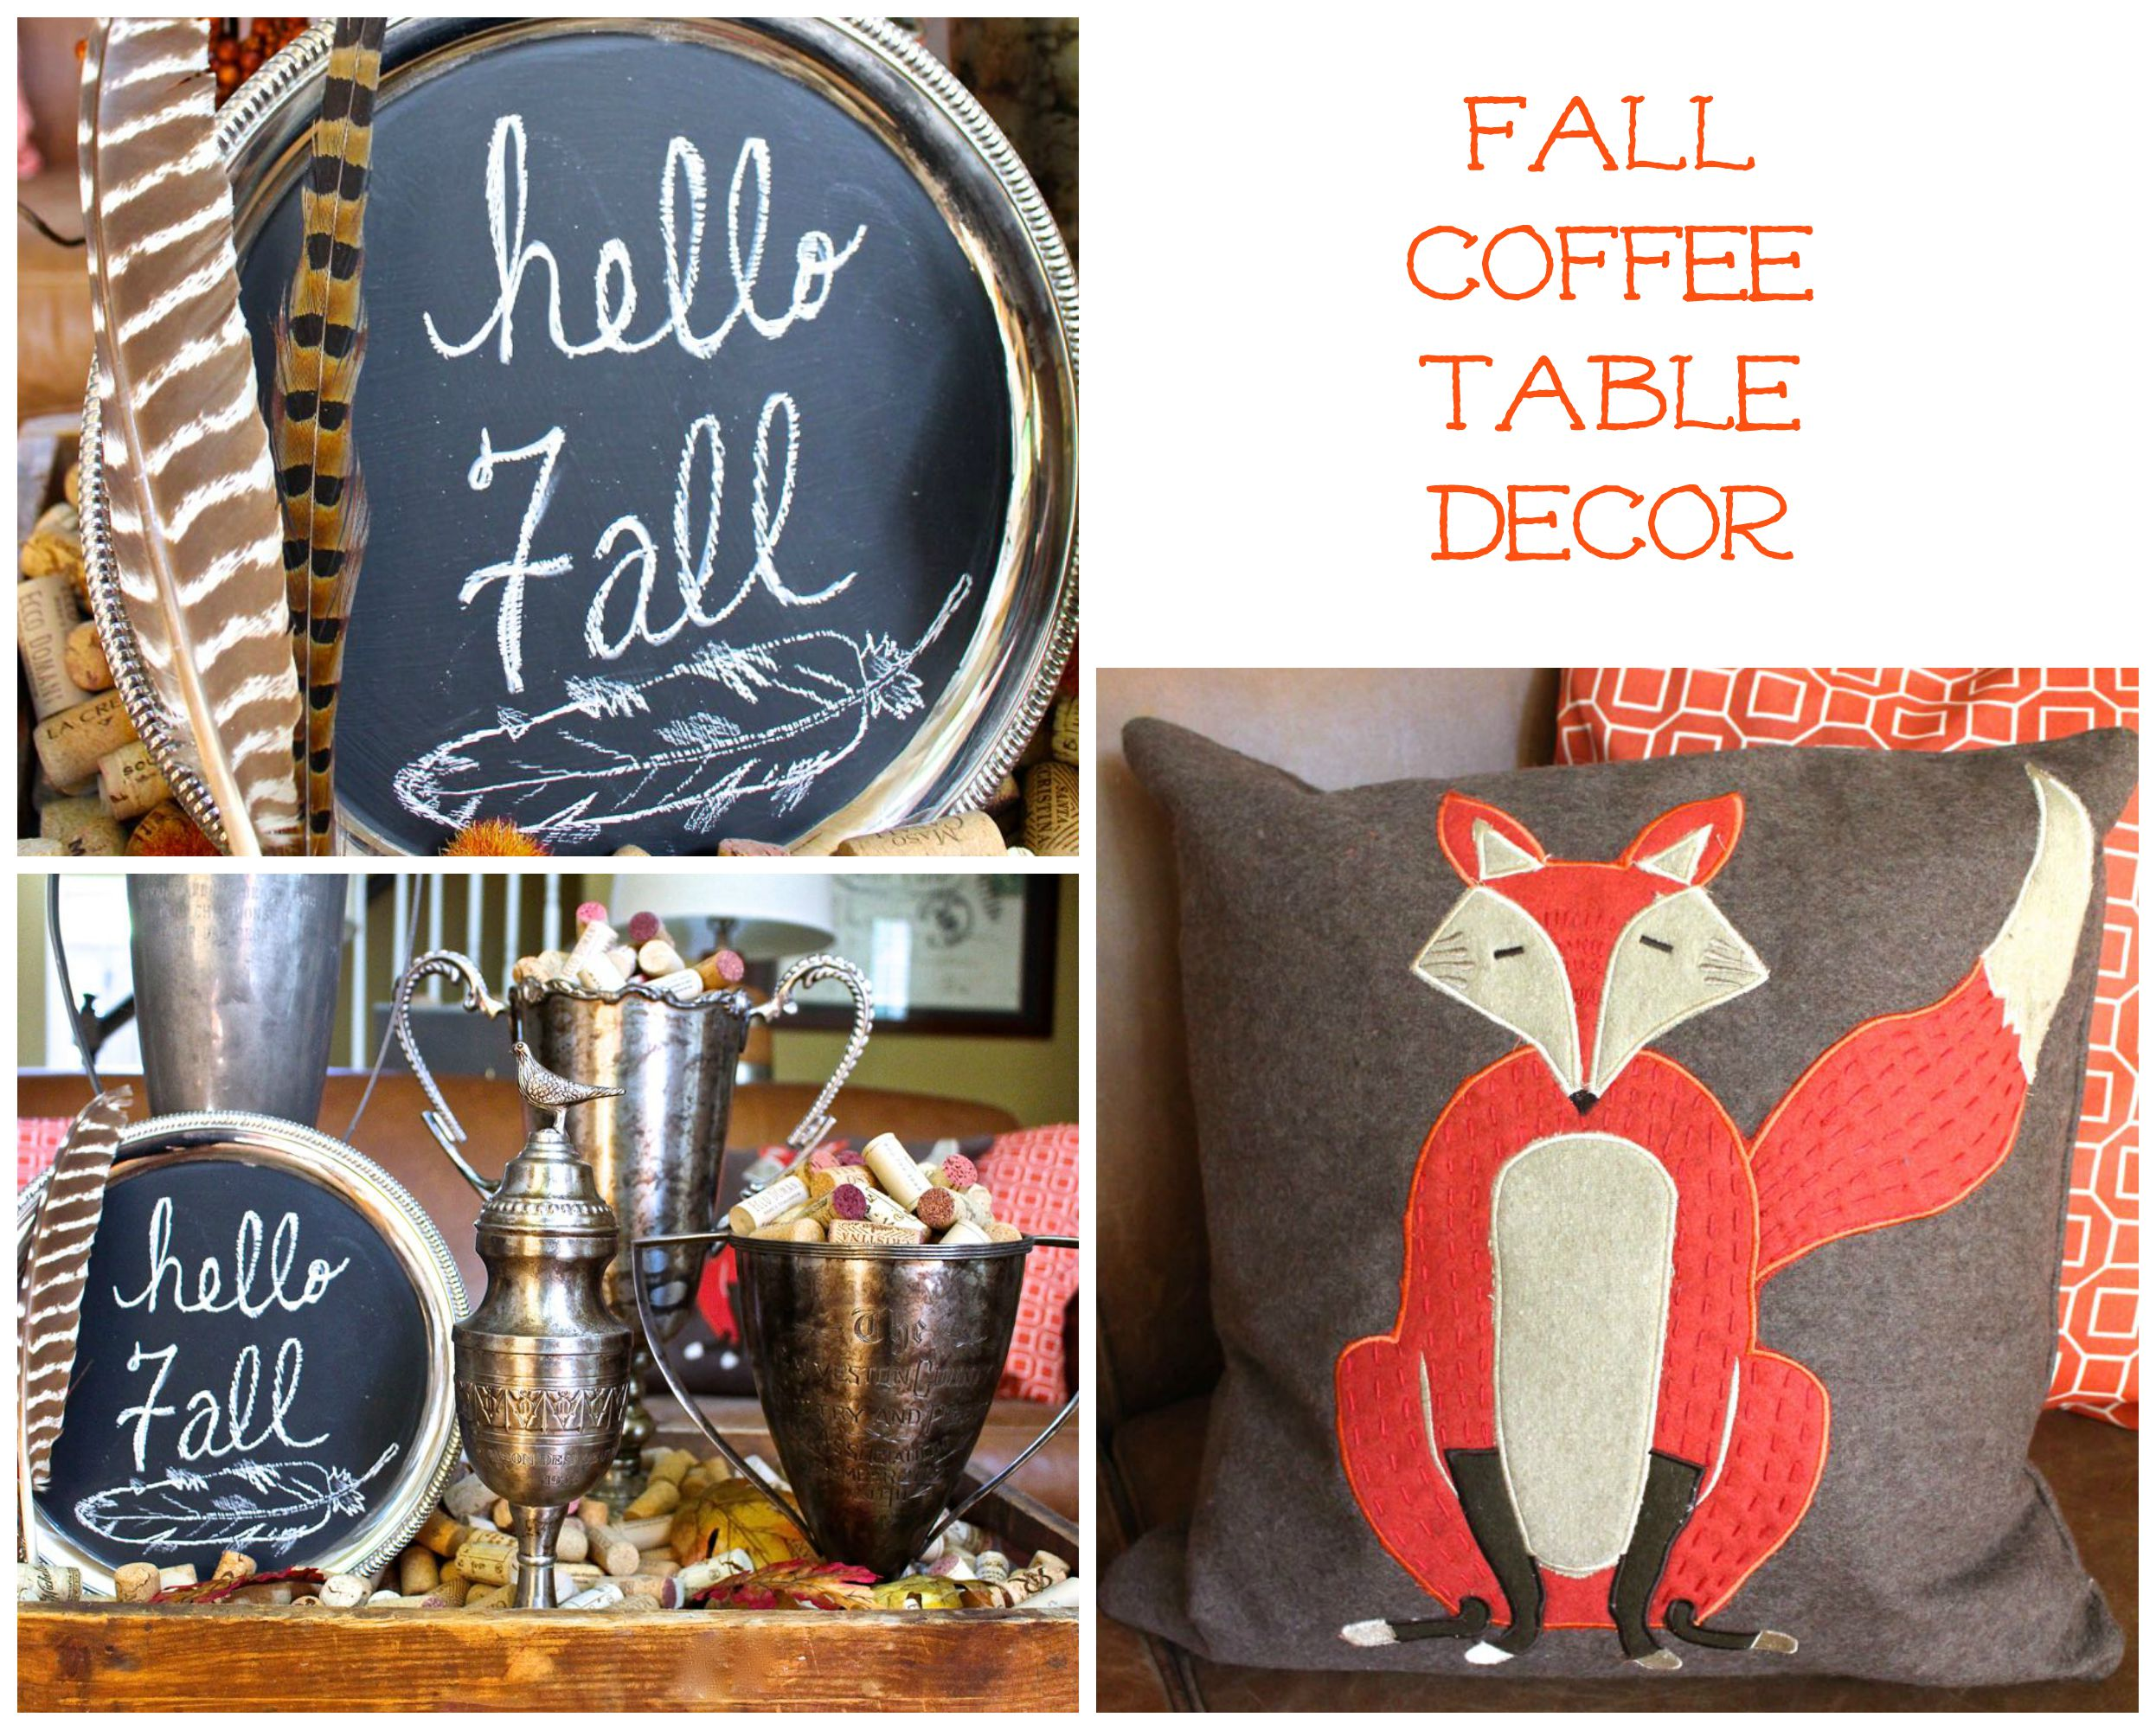 Fall Coffee Table Decor Collage